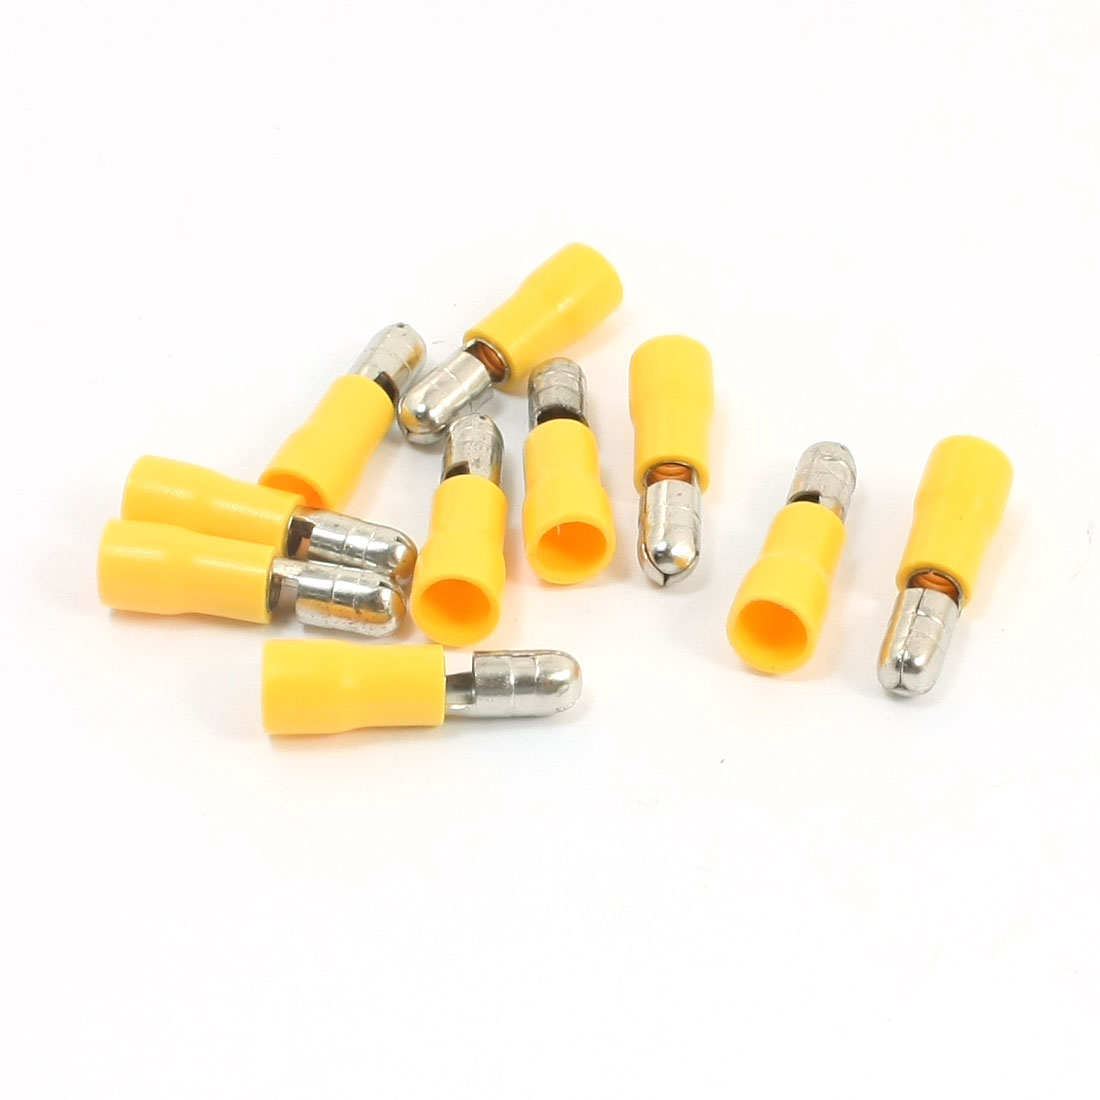 10Pcs 12-10AWG MPD5-195 Yellow PVC Sleeve Insulated 5mm Cable Terminals Crimp